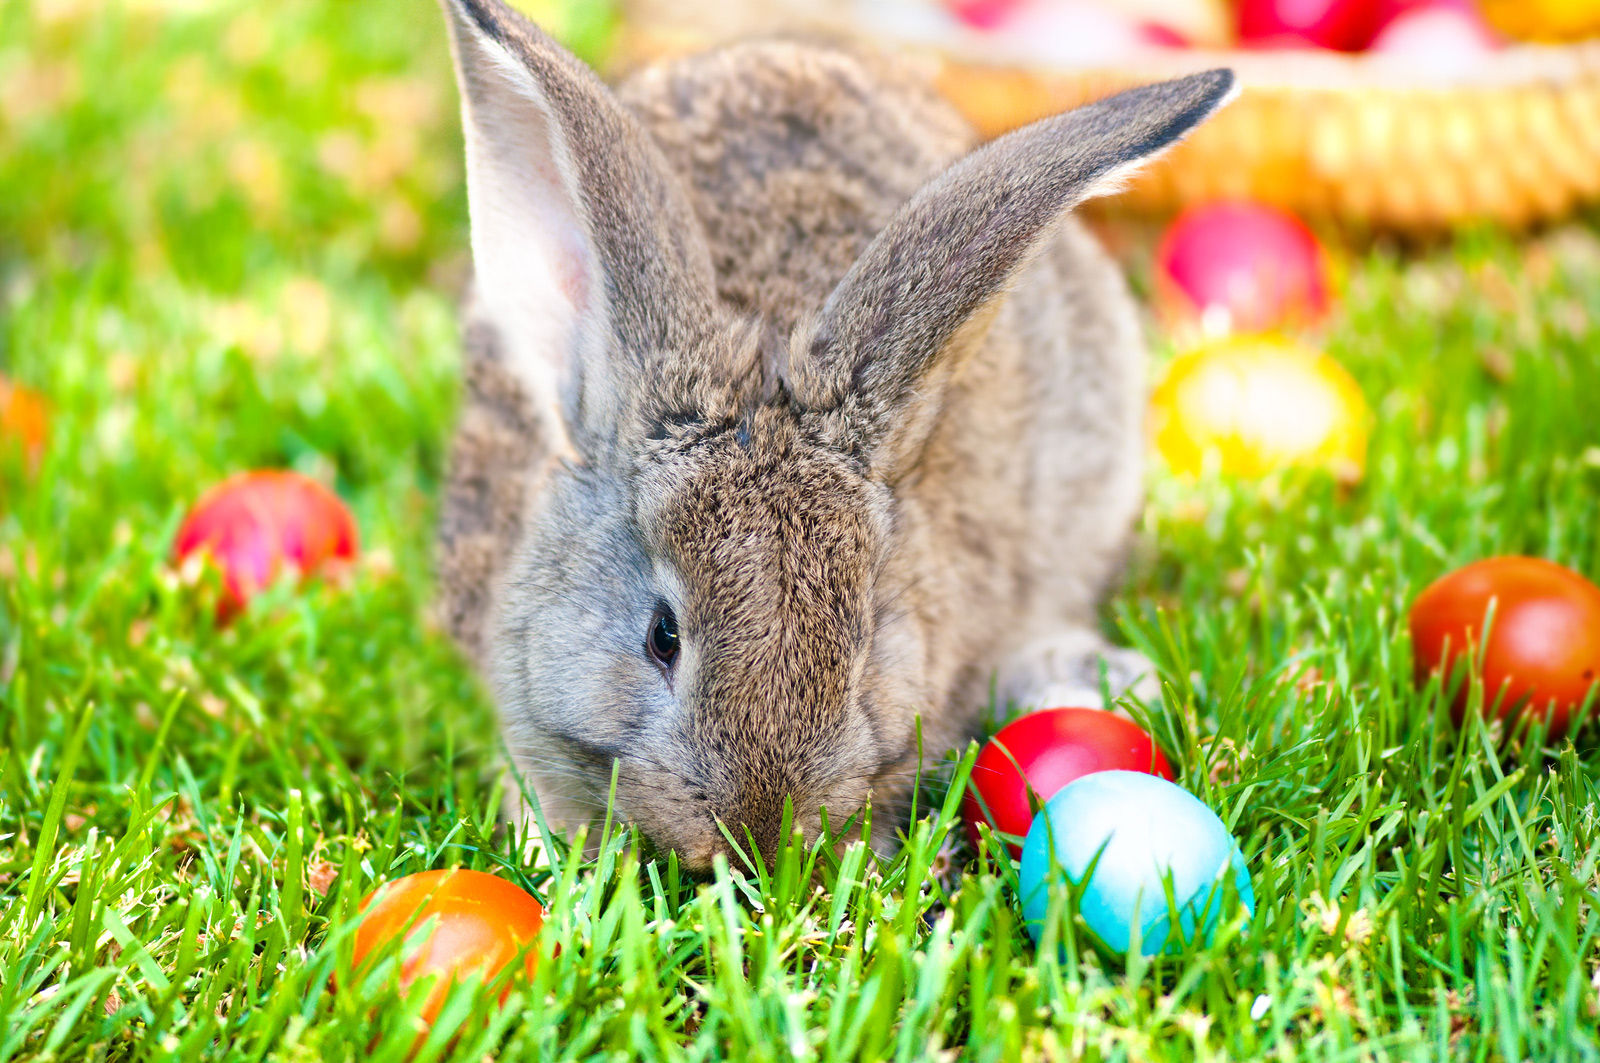 Search for the Easter bunny and enjoy other spring events and activities when staying at Medicine Hat hotels such as the Comfort Inn and Suites.